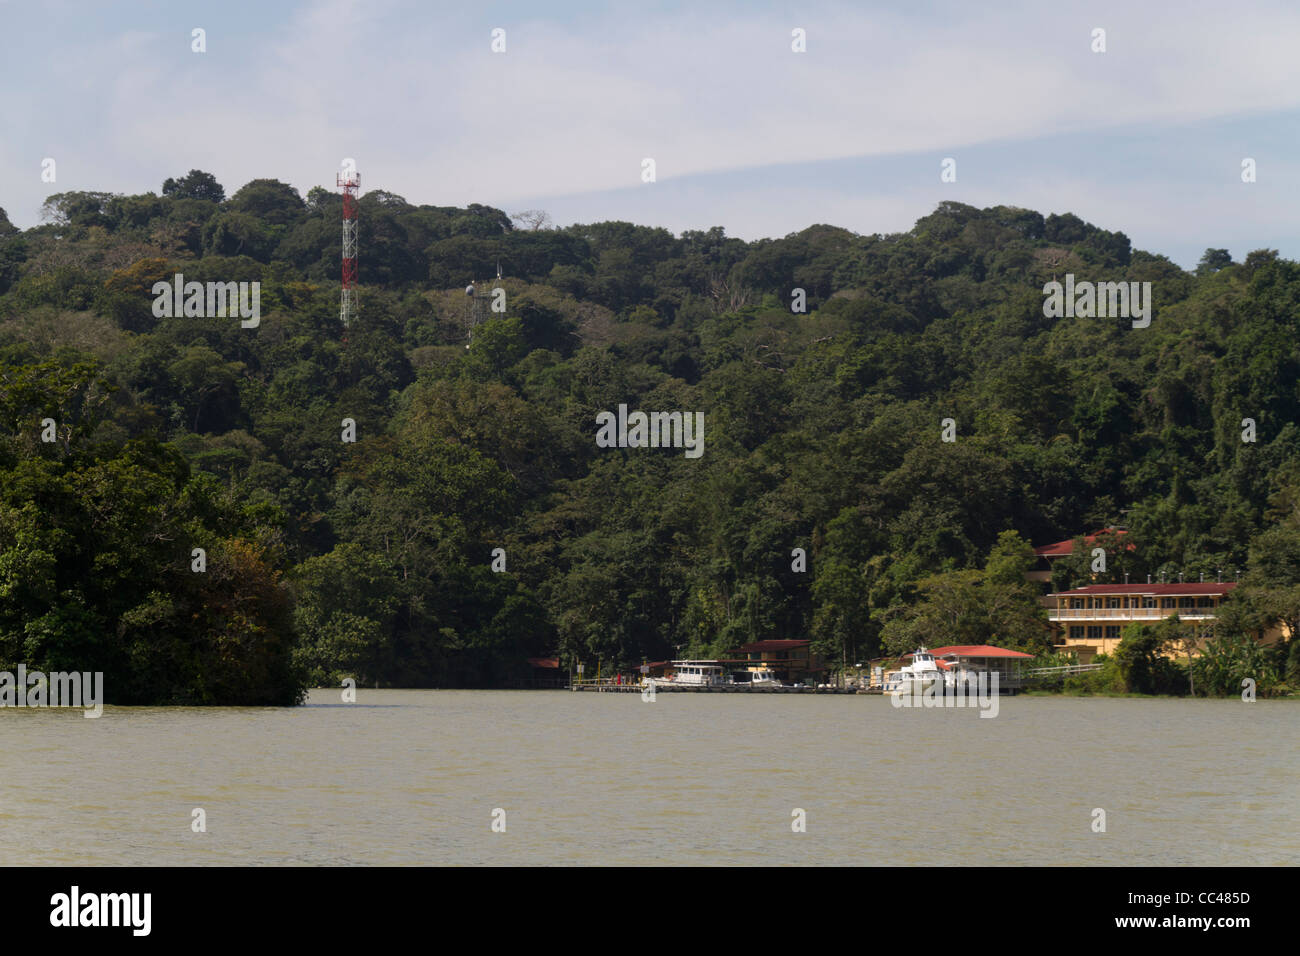 Barro Colorado Island, Gatun Lake, Panama Canal, Republic of Panama, Central America - Stock Image